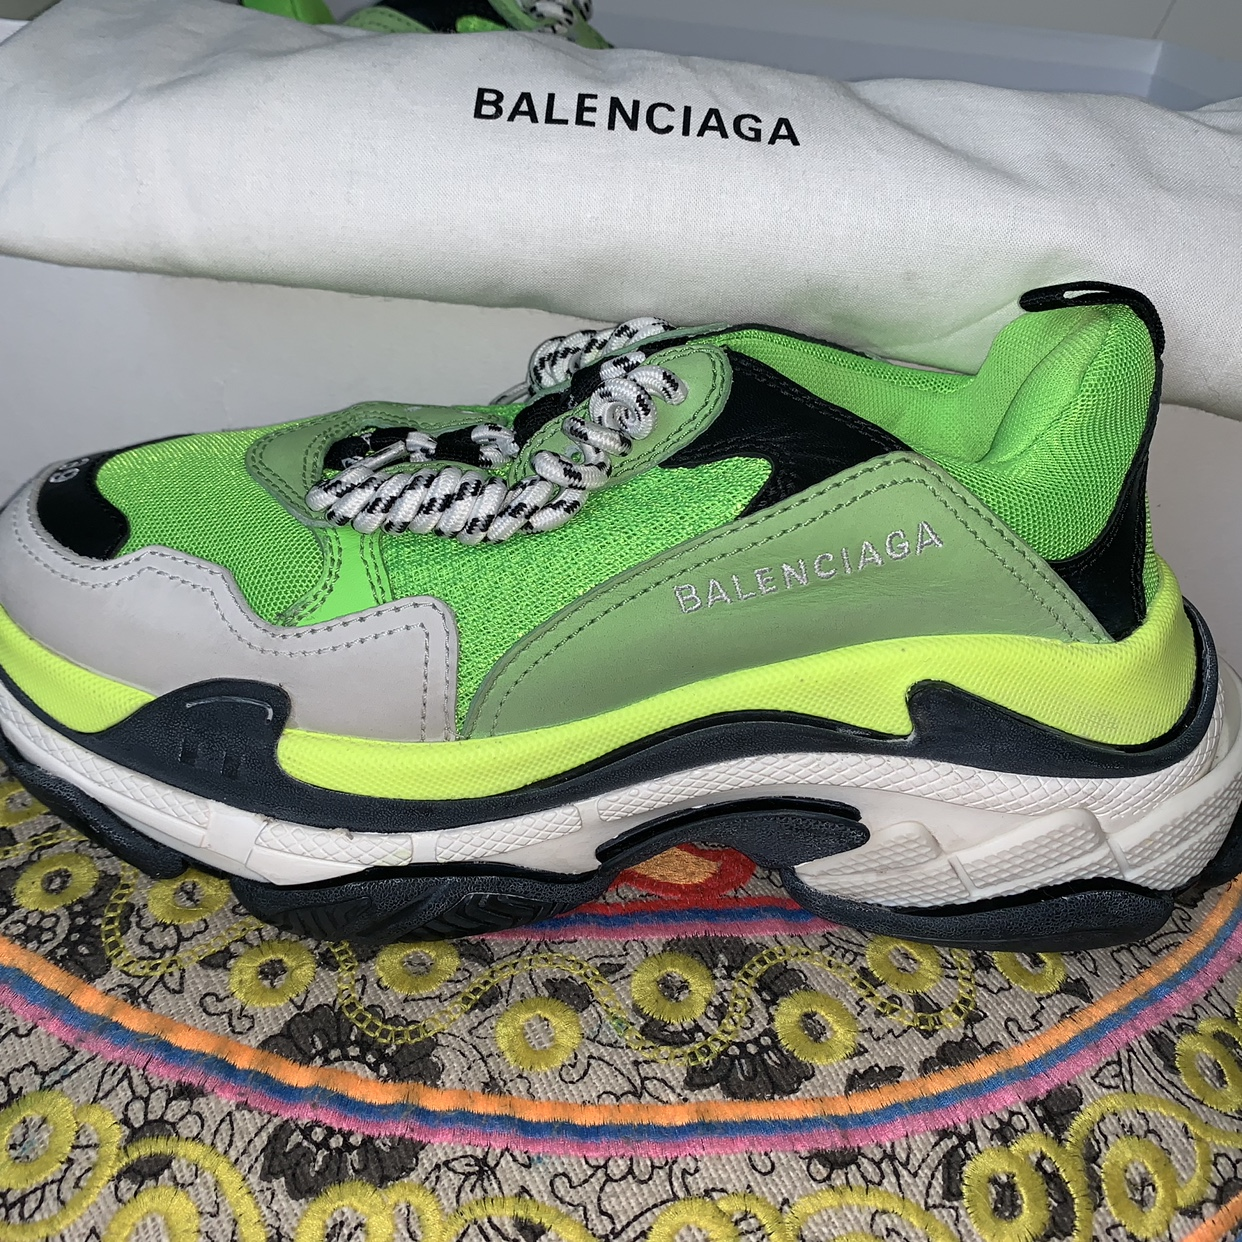 Balenciaga's Triple S Sneaker Surfaces in New Colorway